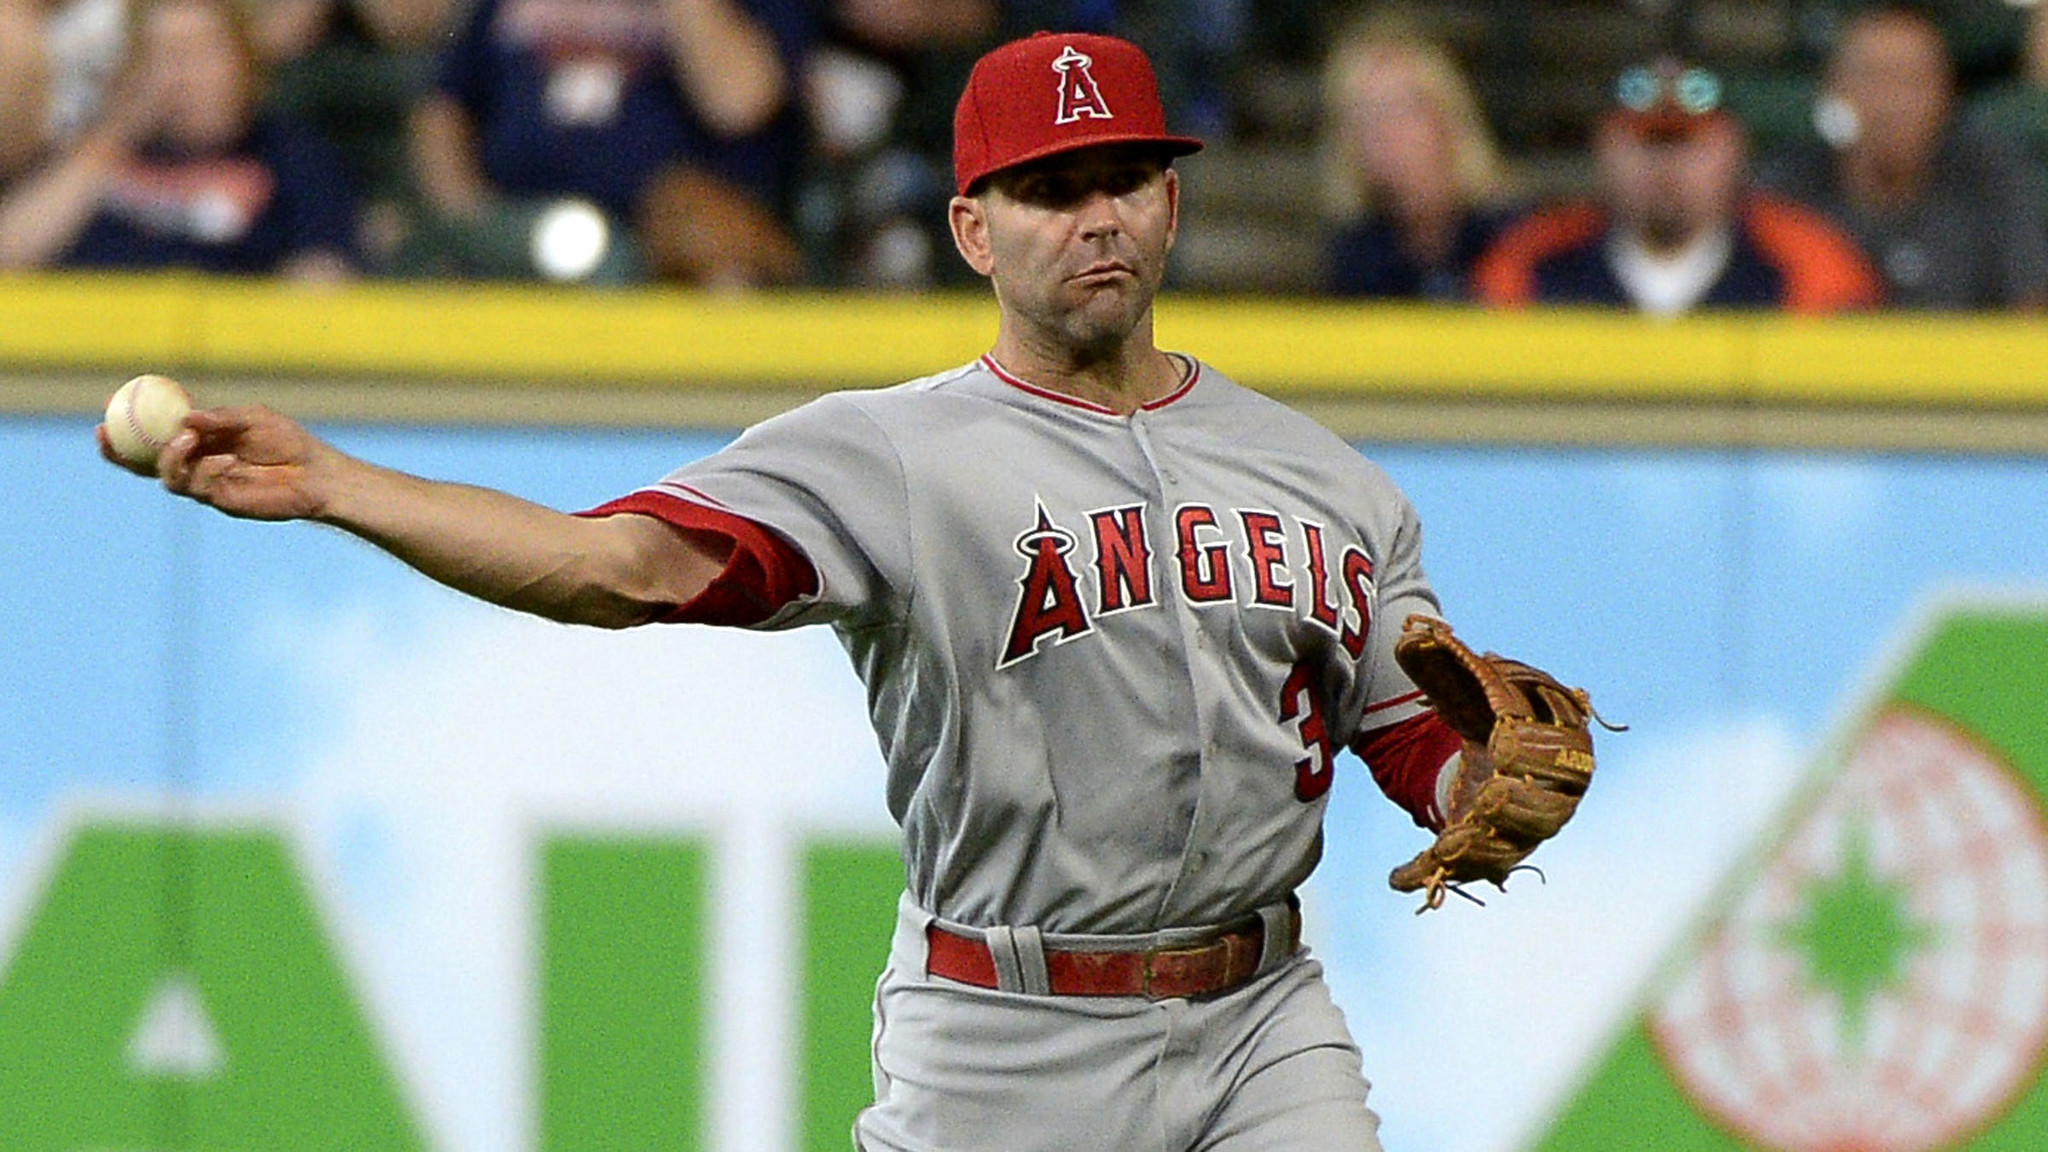 La-sp-angels-report-20170420